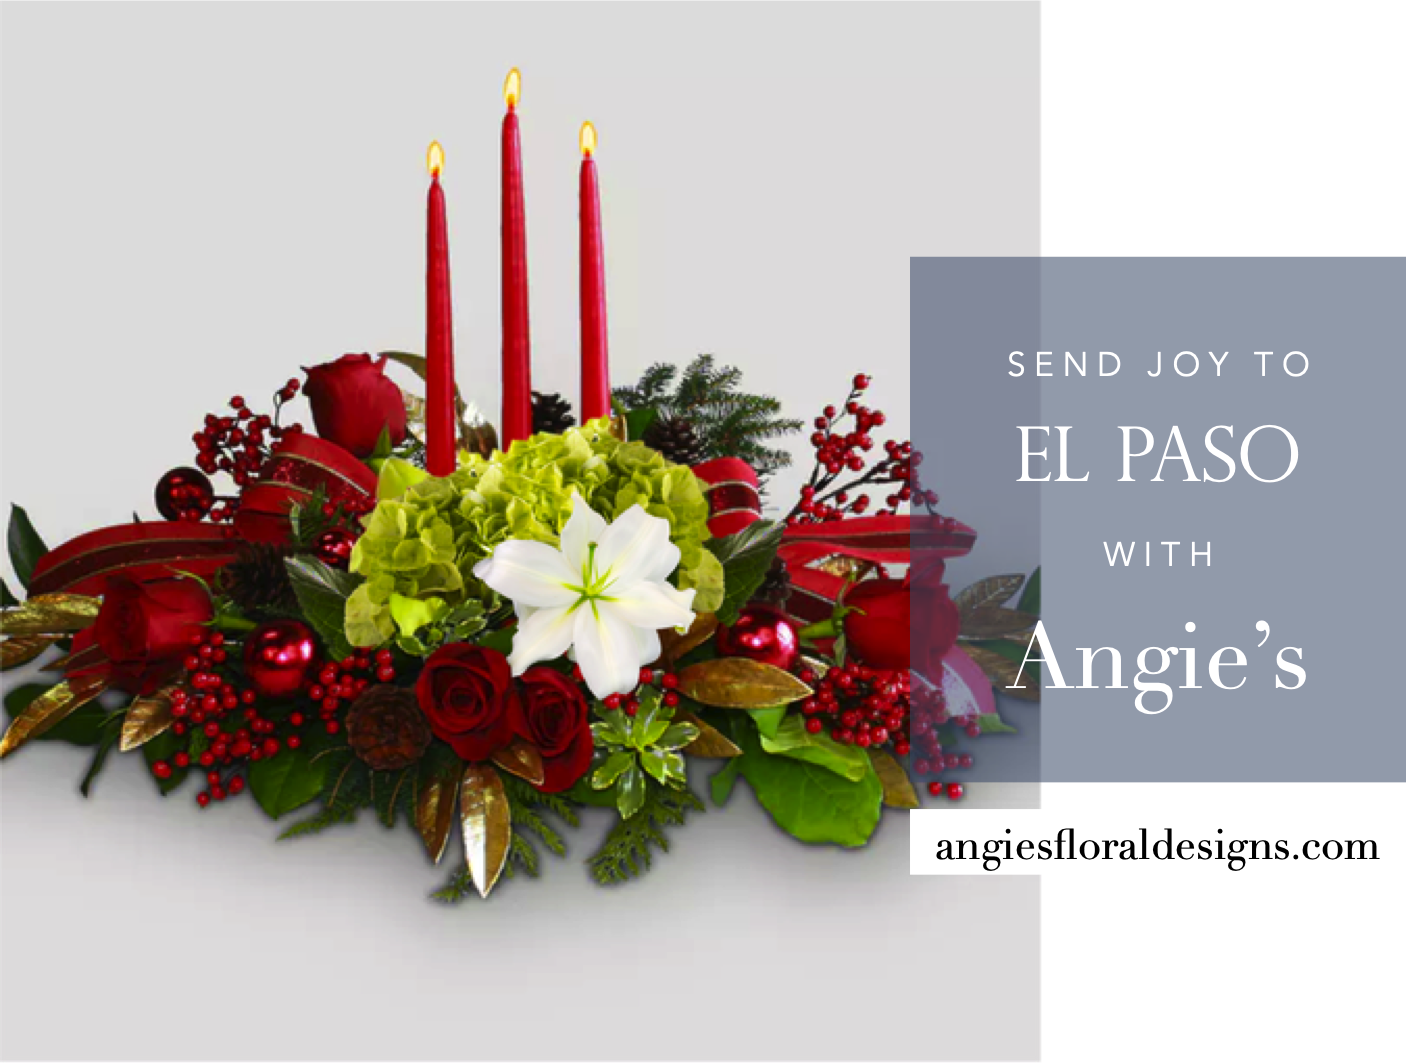 Holiday Flowers Are Here Angies Floral Designs